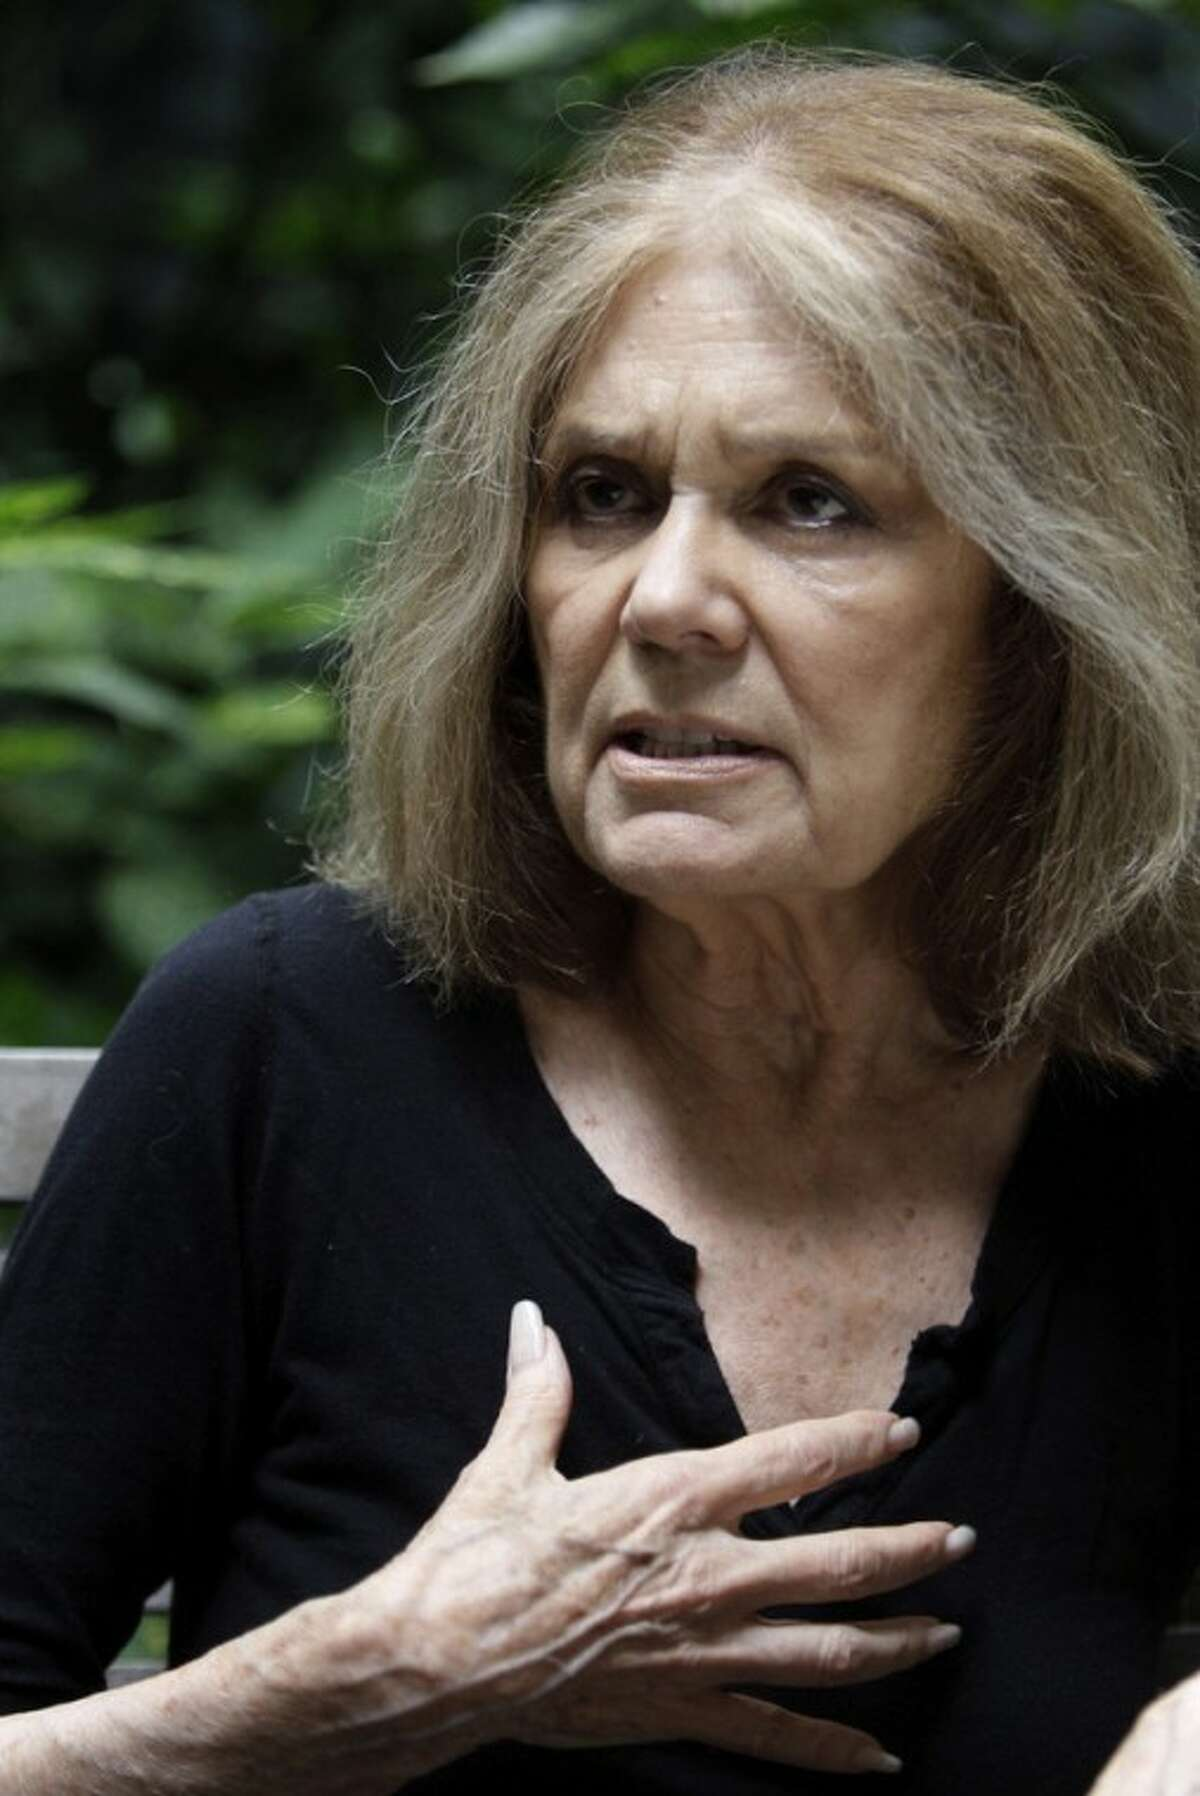 AP photo / Mary Altaffer Gloria Steinem speaks during an interview in New York. Four decades after she helped found the women's movement, the feminist icon is in a reflective mode, writing a memoir and participating in an HBO documentary on her life.